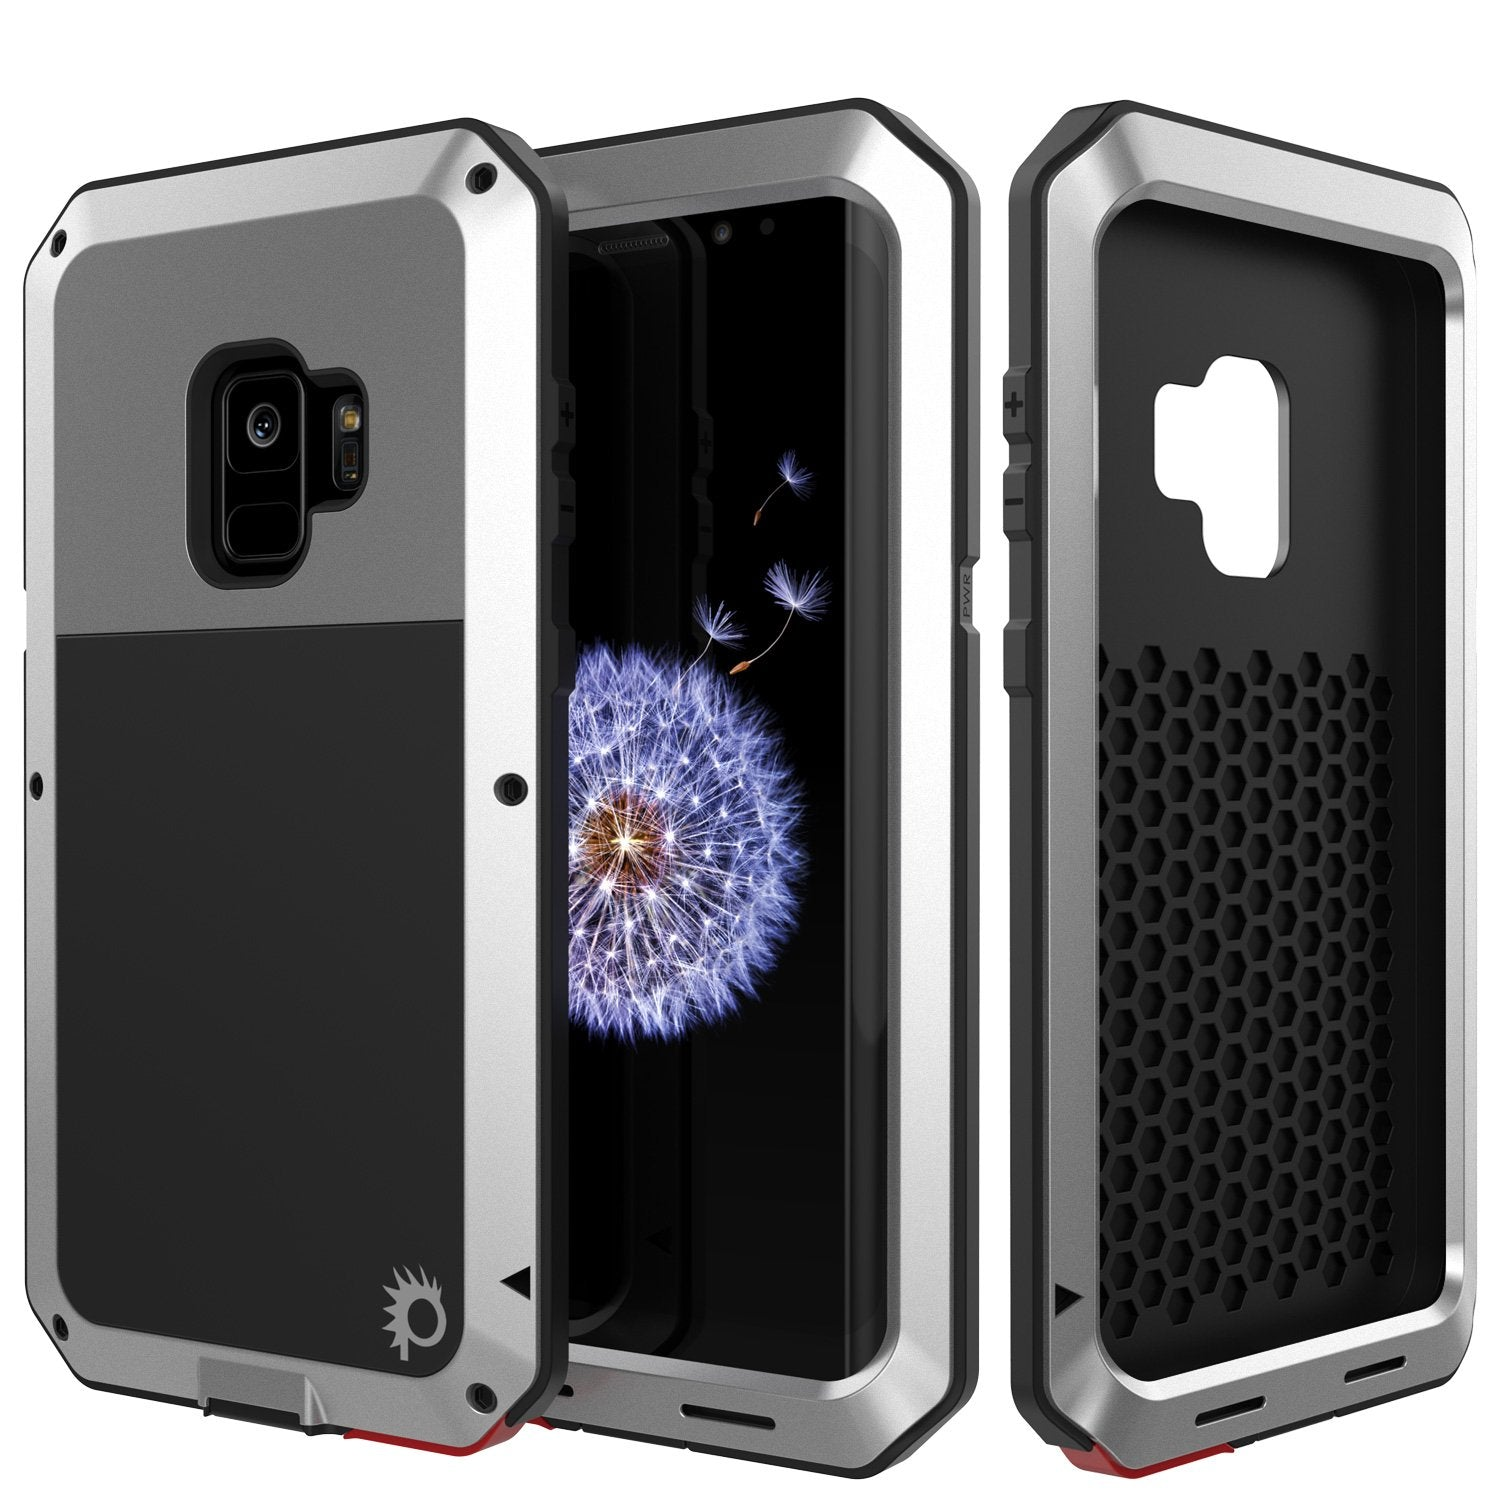 Galaxy S9 Metal Case, Heavy Duty Military Grade Rugged Armor Cover [shock proof] Hybrid Full Body Hard Aluminum & TPU Design [non slip] W/ Prime Drop Protection for Samsung Galaxy S9 [Silver]